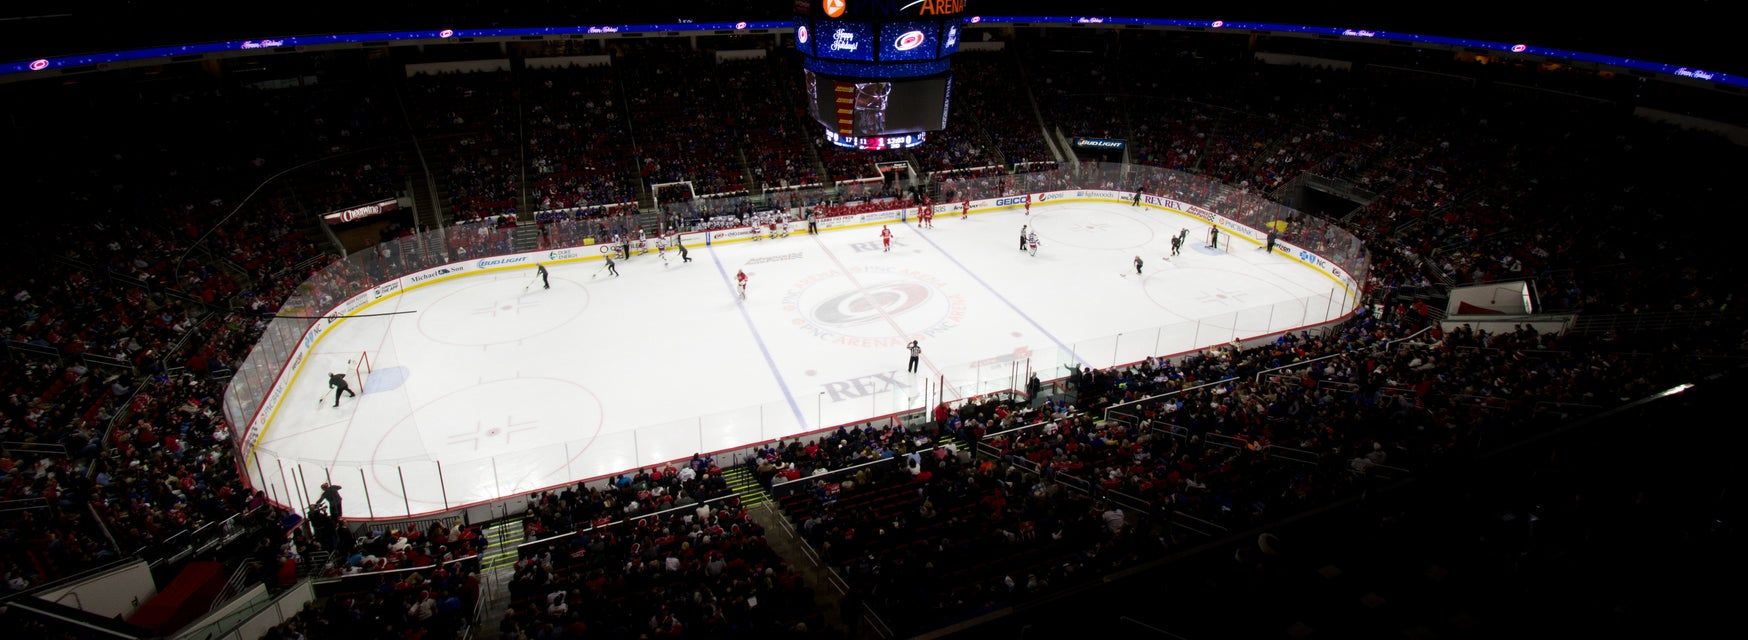 Seat view from Balcony Premier